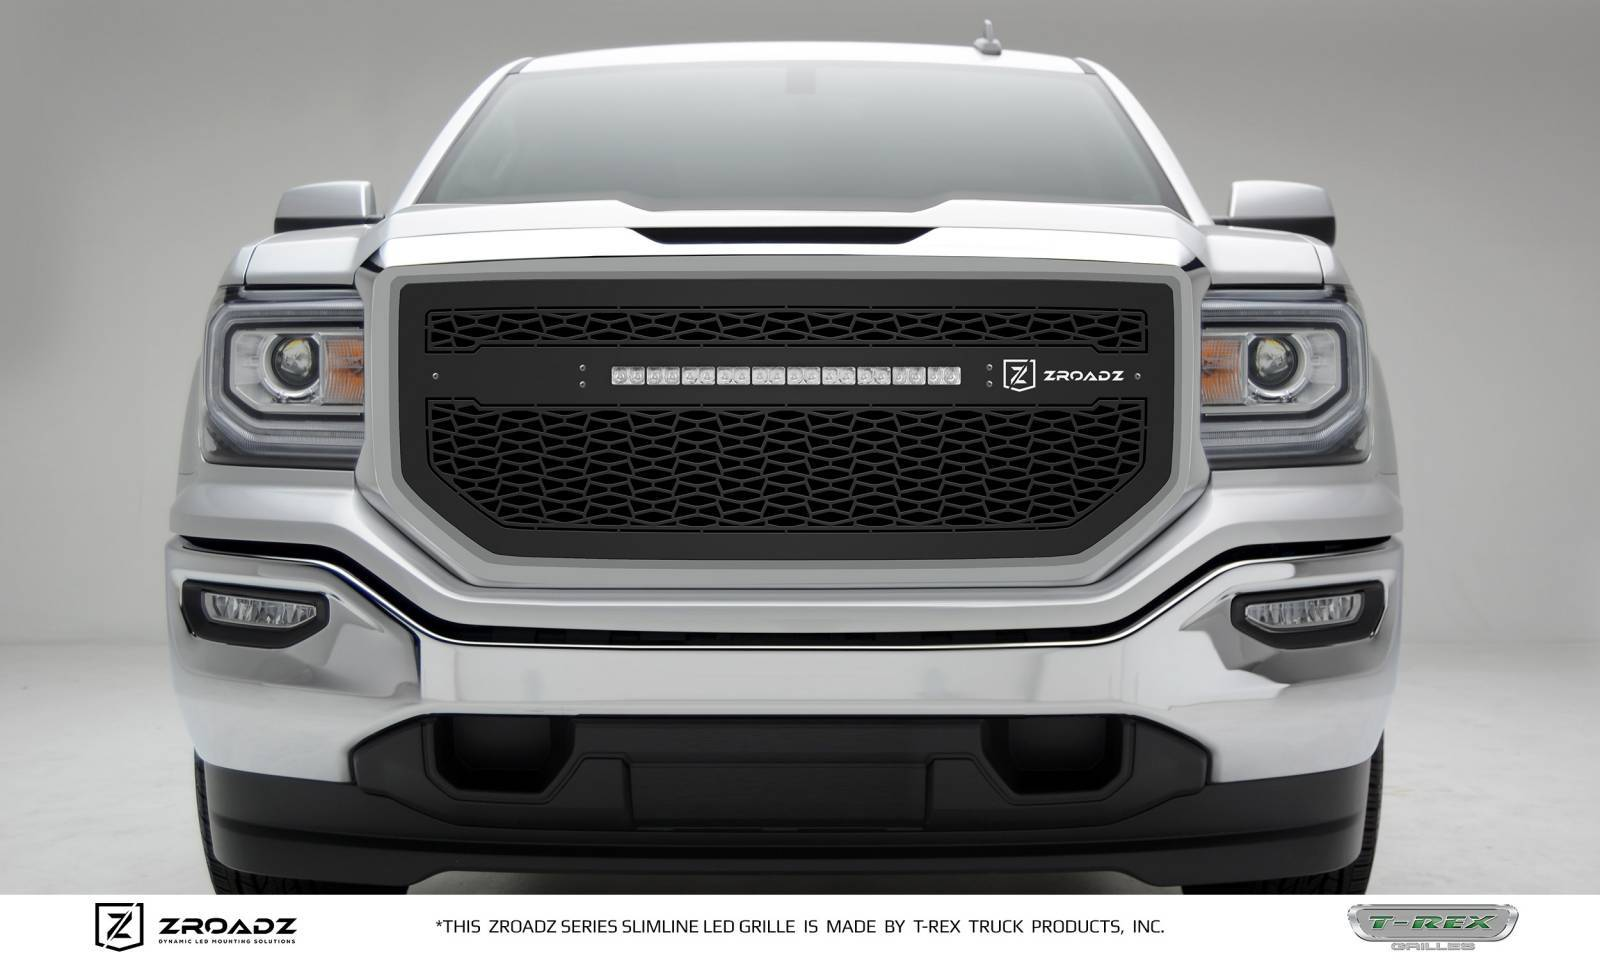 T-REX GMC Sierra 1500 - ZROADZ Series - Main Insert - Grille w/ One 20 Inch Slim Line Single Row LED Light Bar - Includes Universal Wiring Harness - Part# Z312131